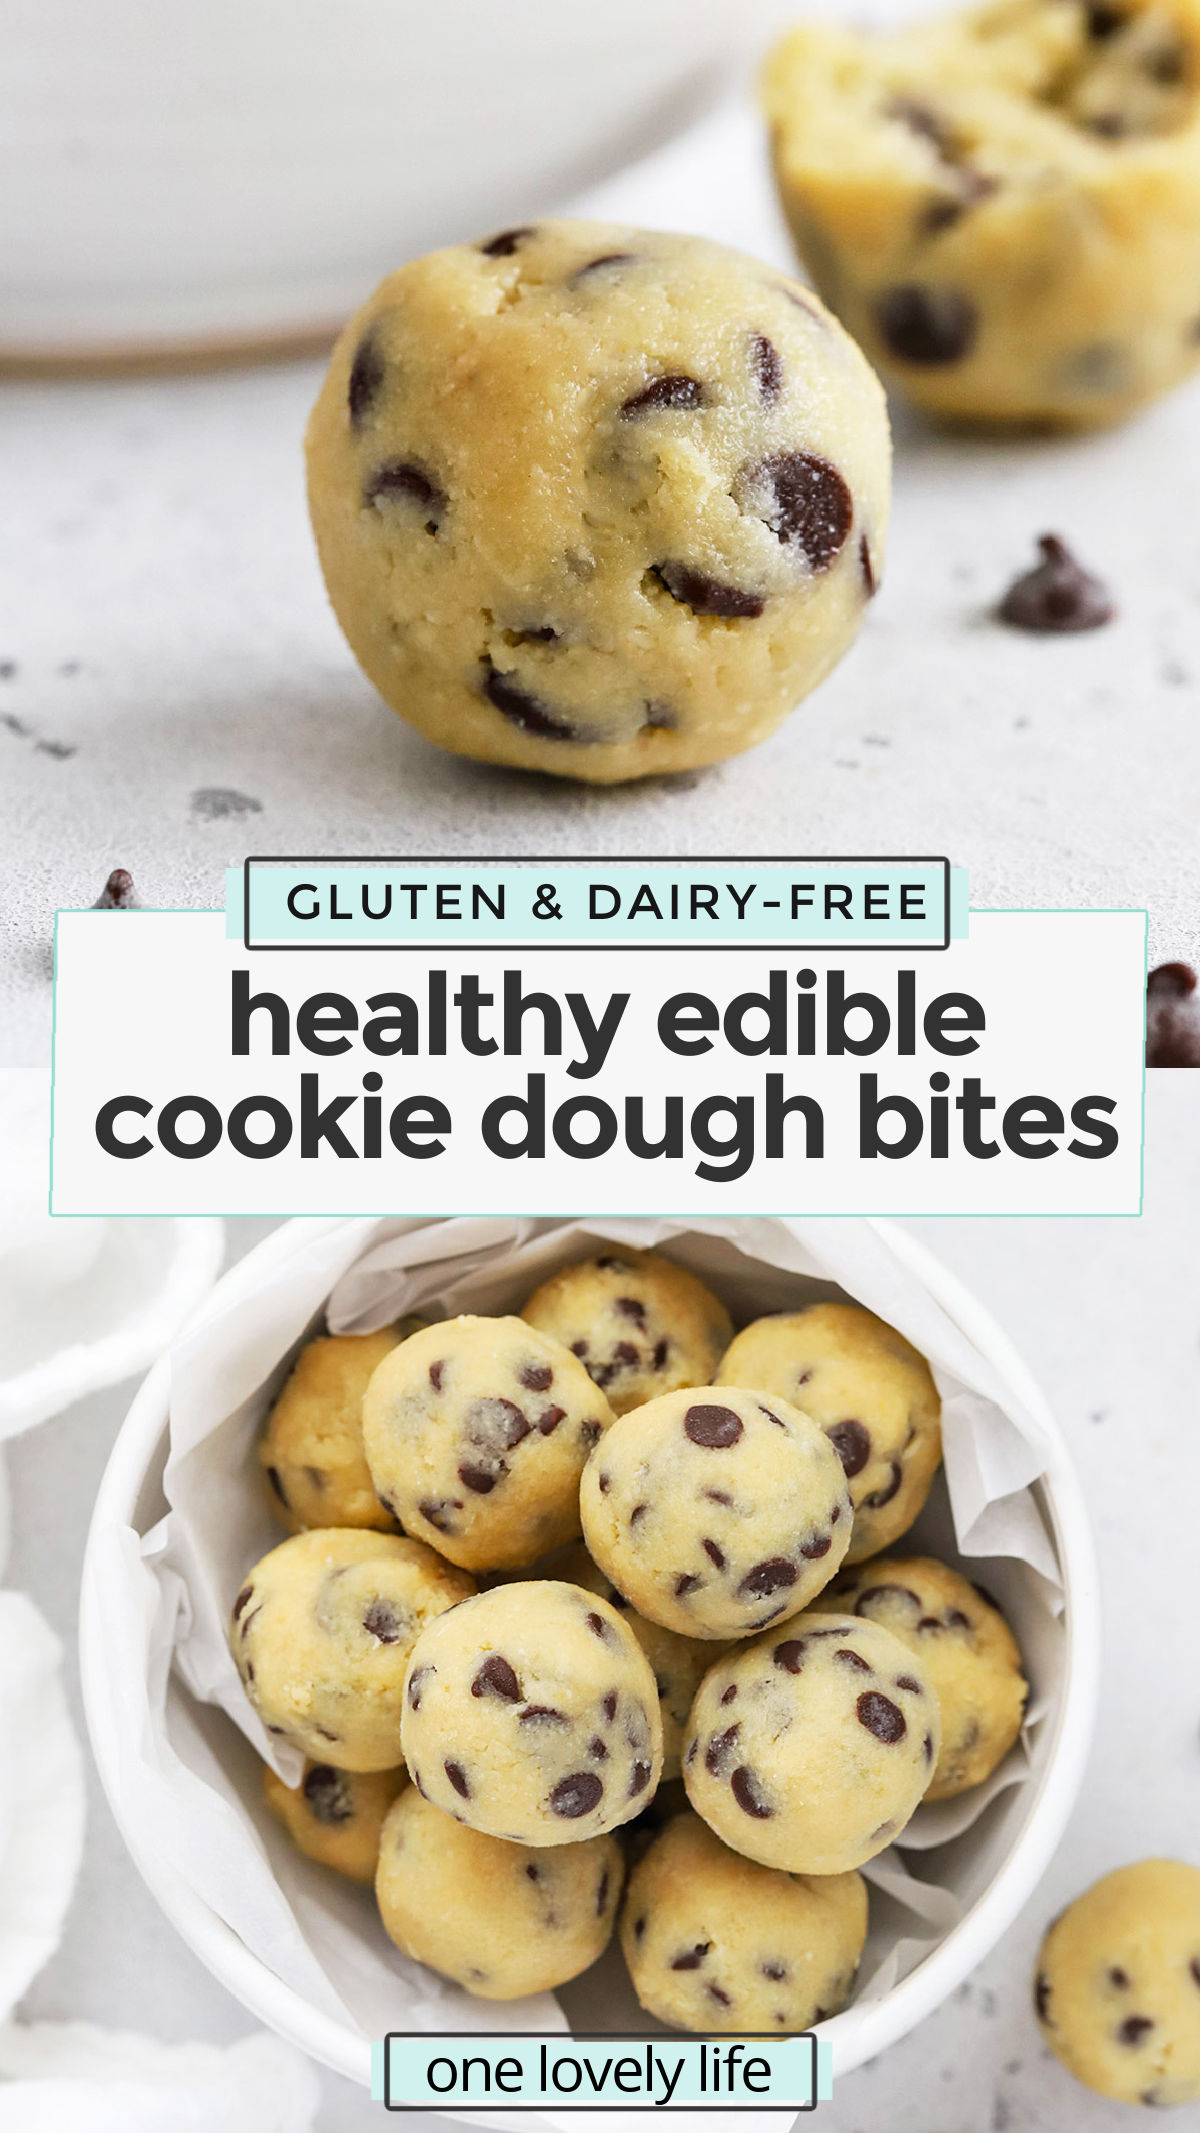 Healthy edible cookie dough? YES PLEASE! This almond flour cookie dough recipe is easy + delicious. The perfect no-bake treat to keep on hand! (Gluten-free, paleo, vegan-friendly) // Almond Flour Cookie Dough // Paleo Edible Cookie Dough // Vegan Edible Cookie Dough // Gluten Free Edible Cookie Dough #almondflour #healthytreat #glutenfree #vegetarian #vegan #cookiedough #paleo